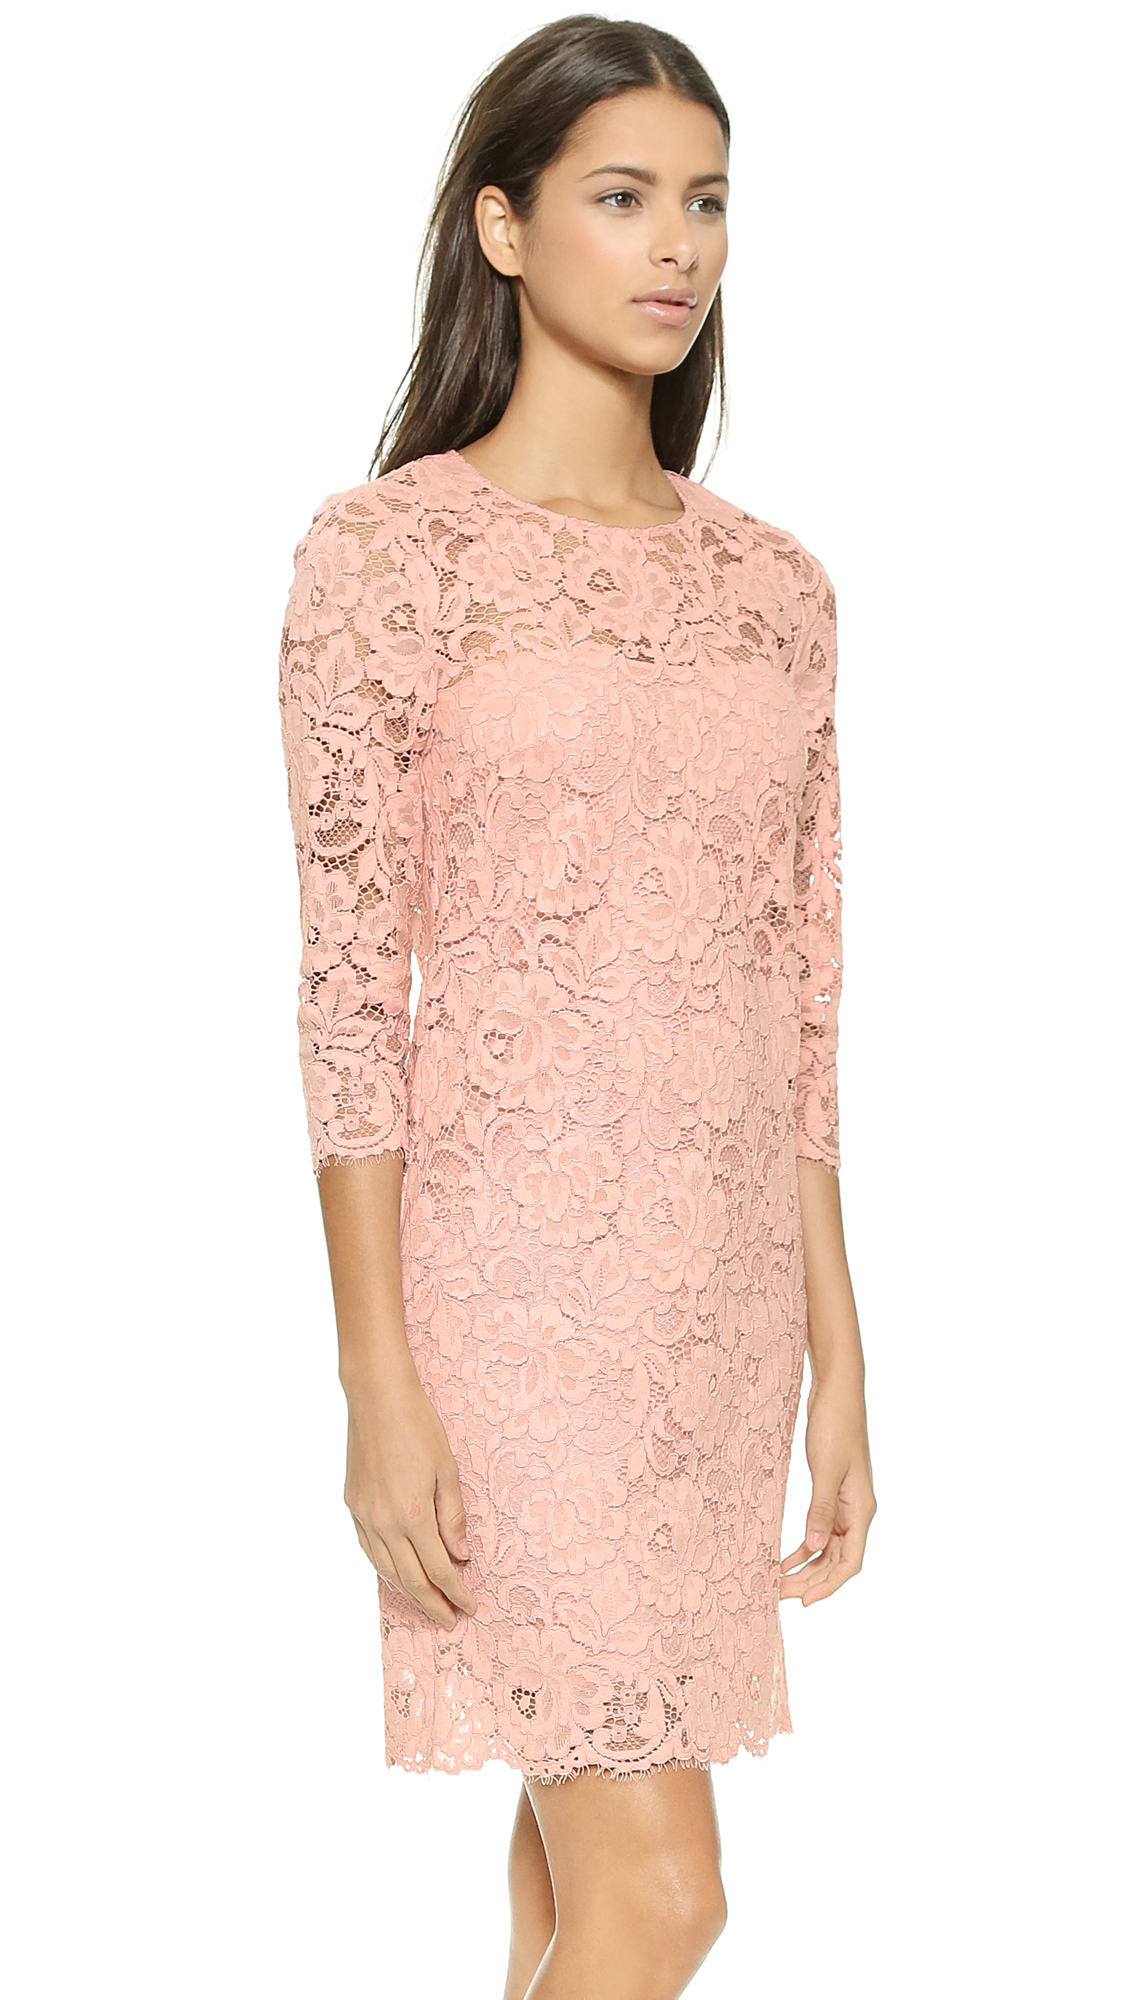 Dkny 3/4 Sleeve Lace Shift Dress - Blush in Pink | Lyst